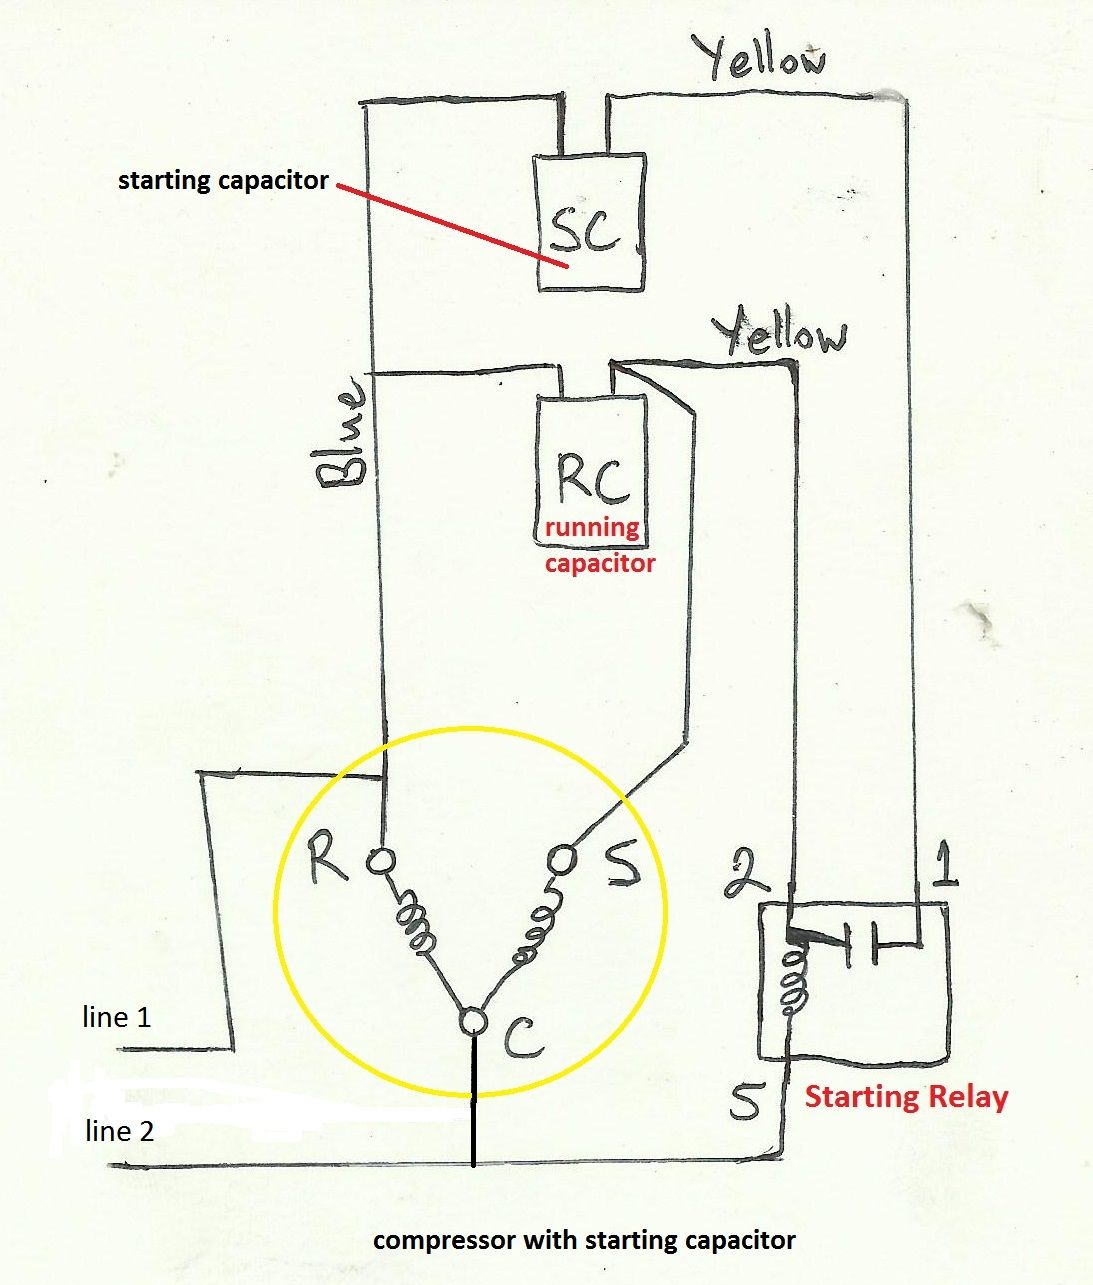 Ac Pump Wiring - Wiring Data Diagram Fuel Pump Relay Wiring Diagram on 98 gmc sierra fuel pump wiring diagram, ford fuel pump wiring diagram, gm fuel pump wiring diagram, fuel pump replacement, oil pump wiring diagram, fuel gauge wiring diagram, idle air control valve wiring diagram, turn signal switch wiring diagram, ignition switch wiring diagram, electric fuel pump wiring diagram, sportster fuel pump part diagram, nissan fuel pump wiring diagram, chevy fuel pump relay diagram, 2001 mustang fuel pump wiring diagram, camshaft position sensor wiring diagram, fuel injection diagram, door lock switch wiring diagram, alternator wiring diagram, voltage regulator wiring diagram, fuel pump wiring harness diagram,